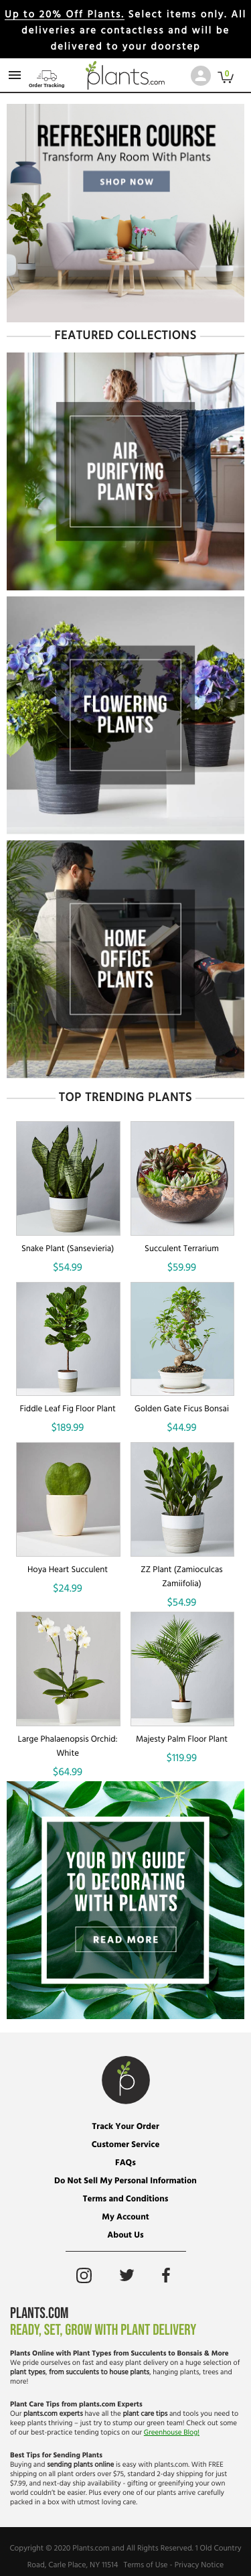 plants.com Coupon